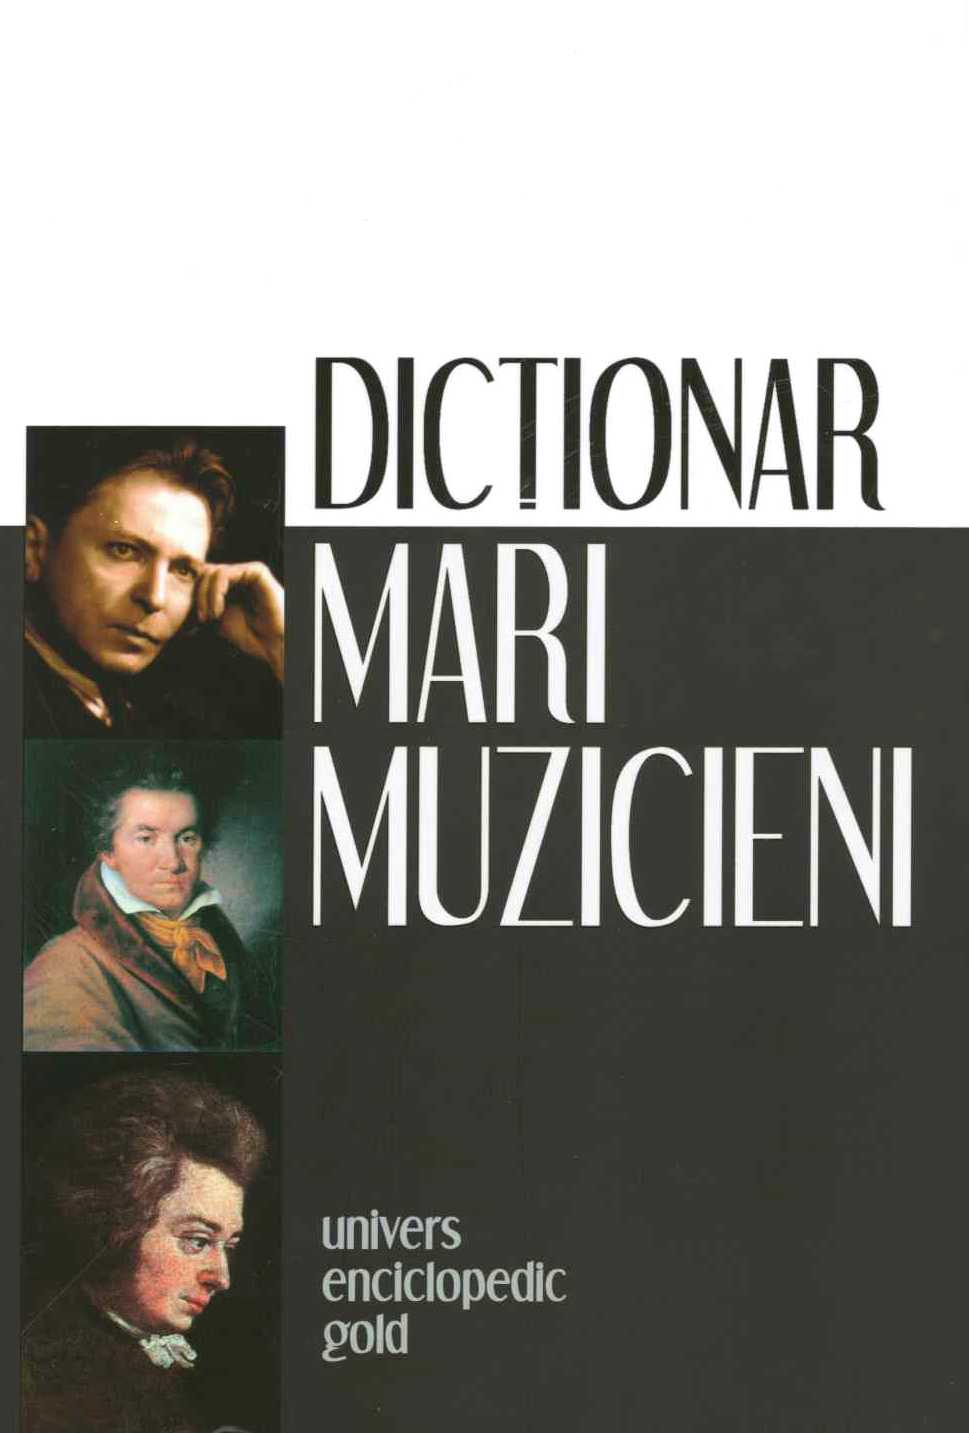 Dictionar de mari muzicieni